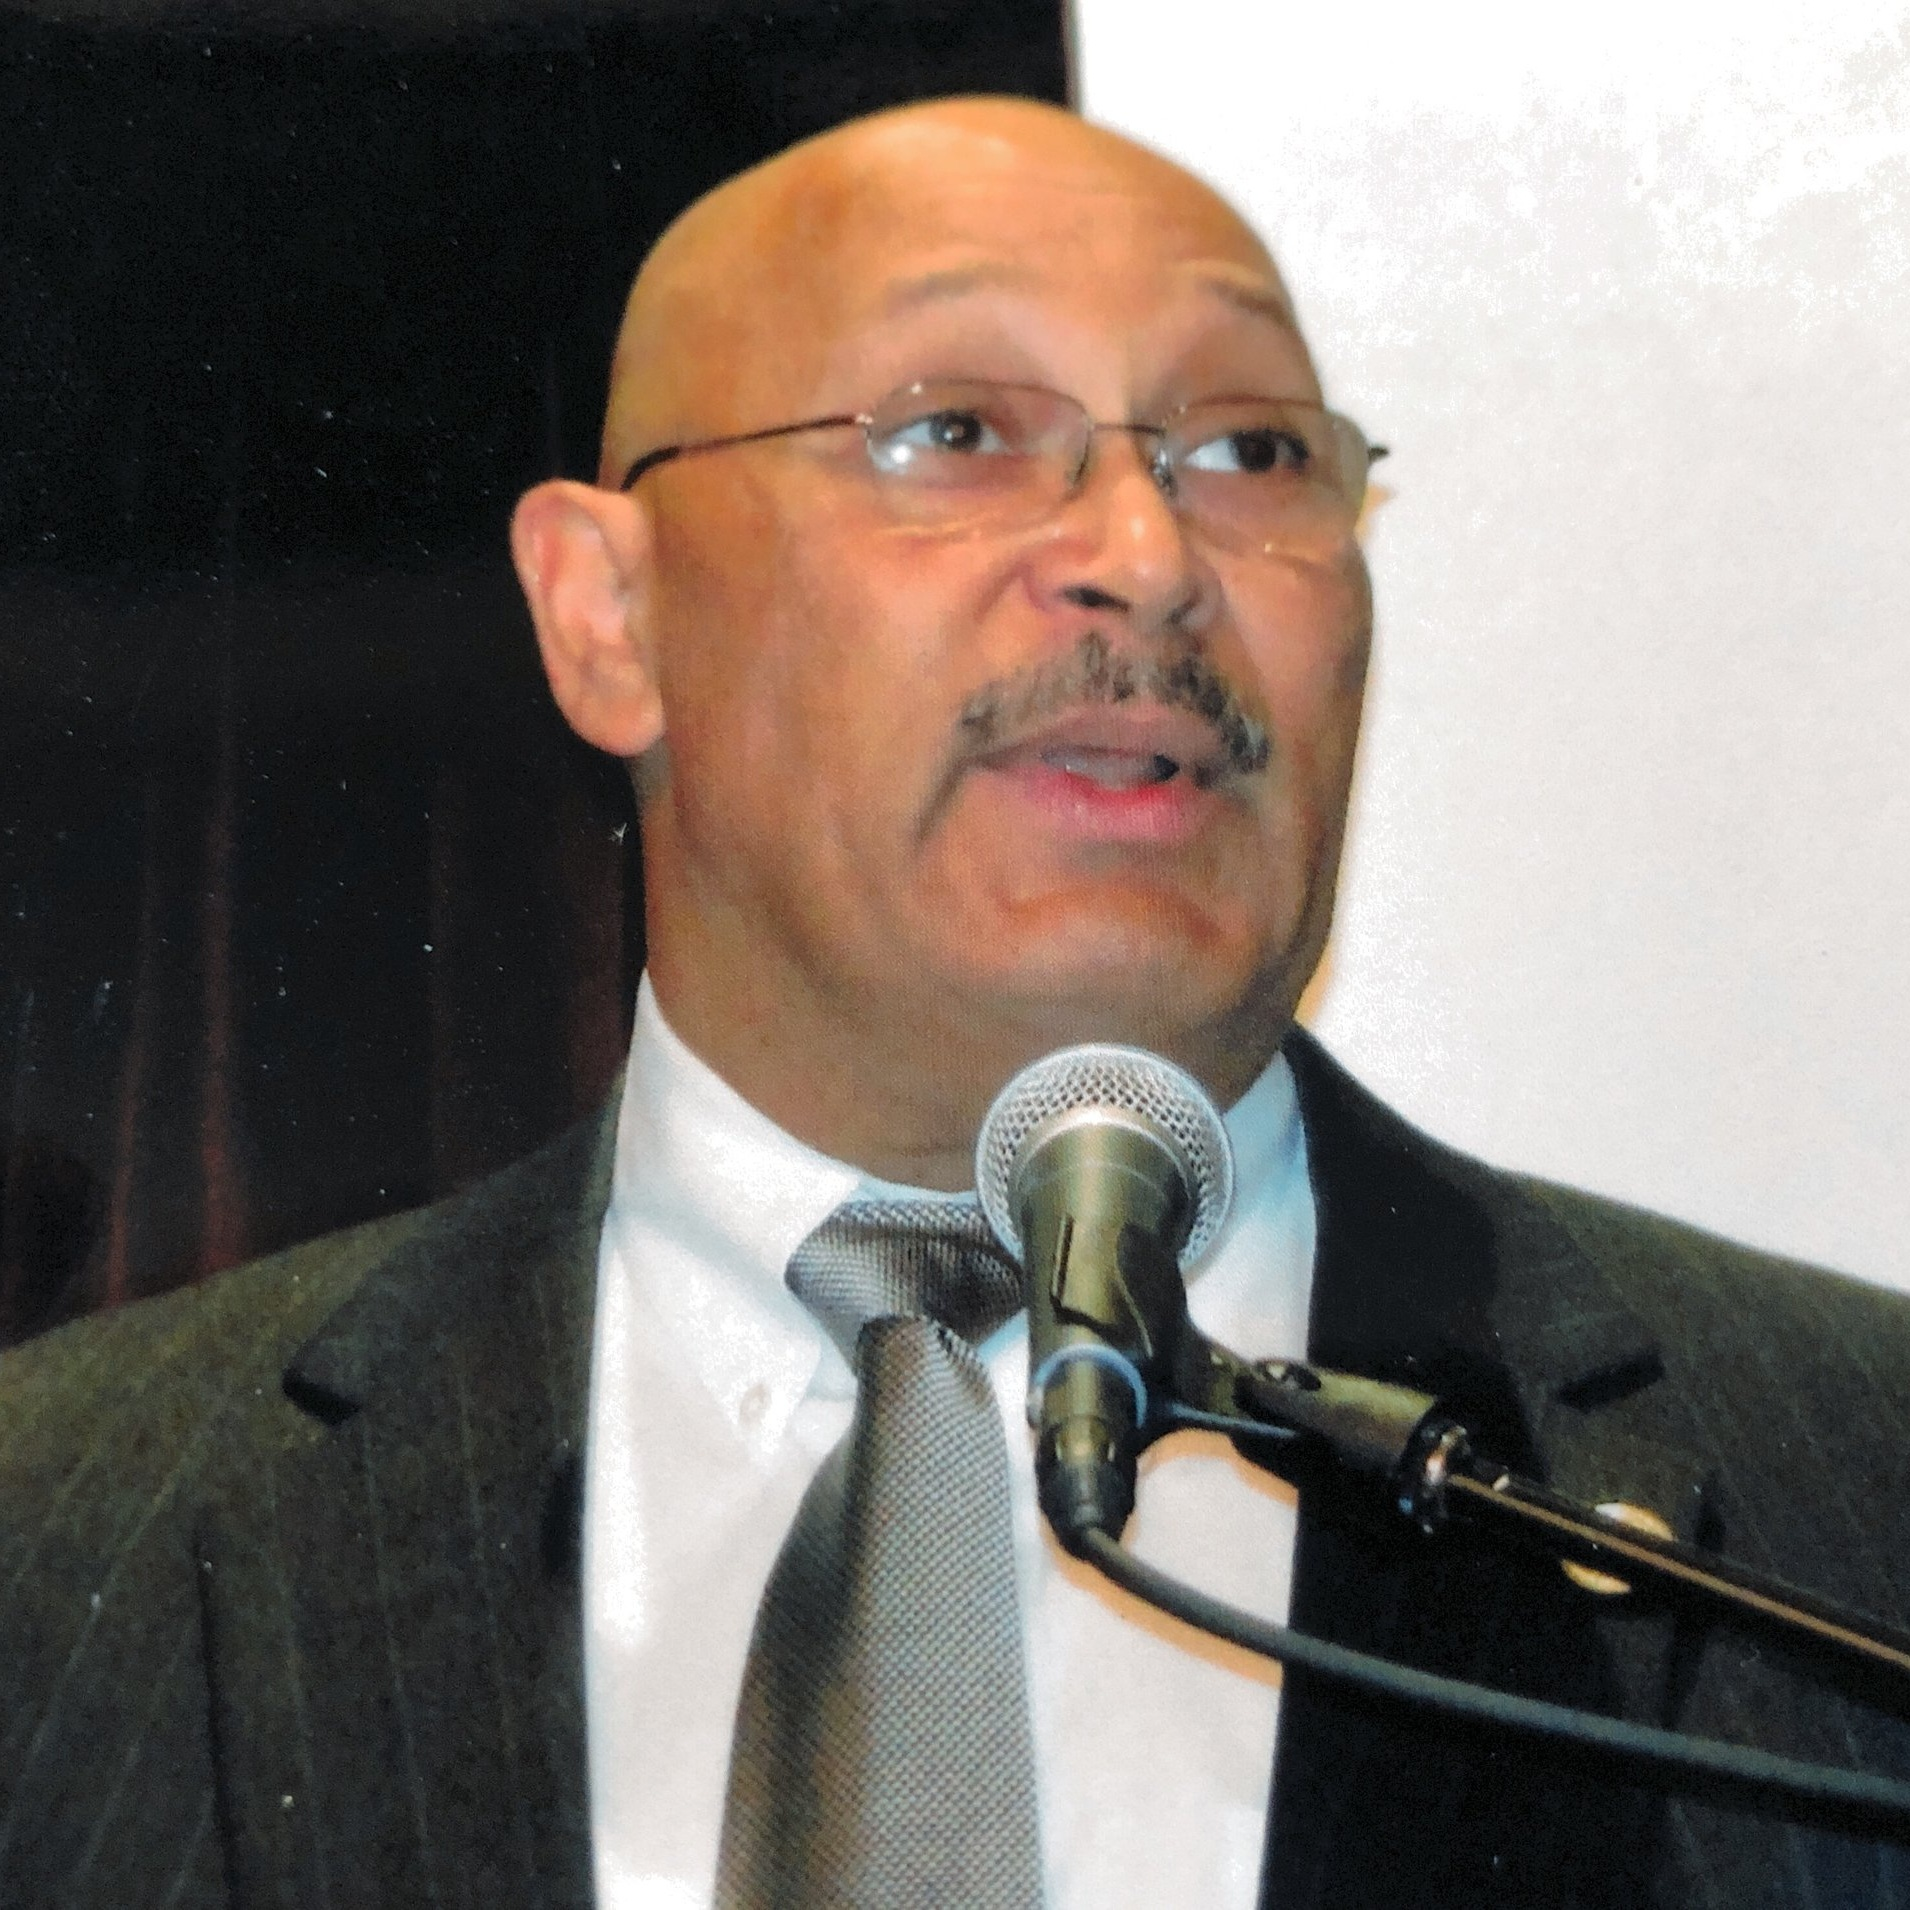 """If you have lived in Fairfax County over the past 20 years, Rodney Lusk has had a positive impact on your life. Rodney has been at the forefront of every major decision that the County has faced during this time. Making sure that our parks were the very best and accessible to all. Rodney represents what and who we need to represent us. A man of strong character and integrity, above reproach, and dedicated to the best for all of his community.""  -William G. Bouie, Chair, Fairfax County Park Authority Board"